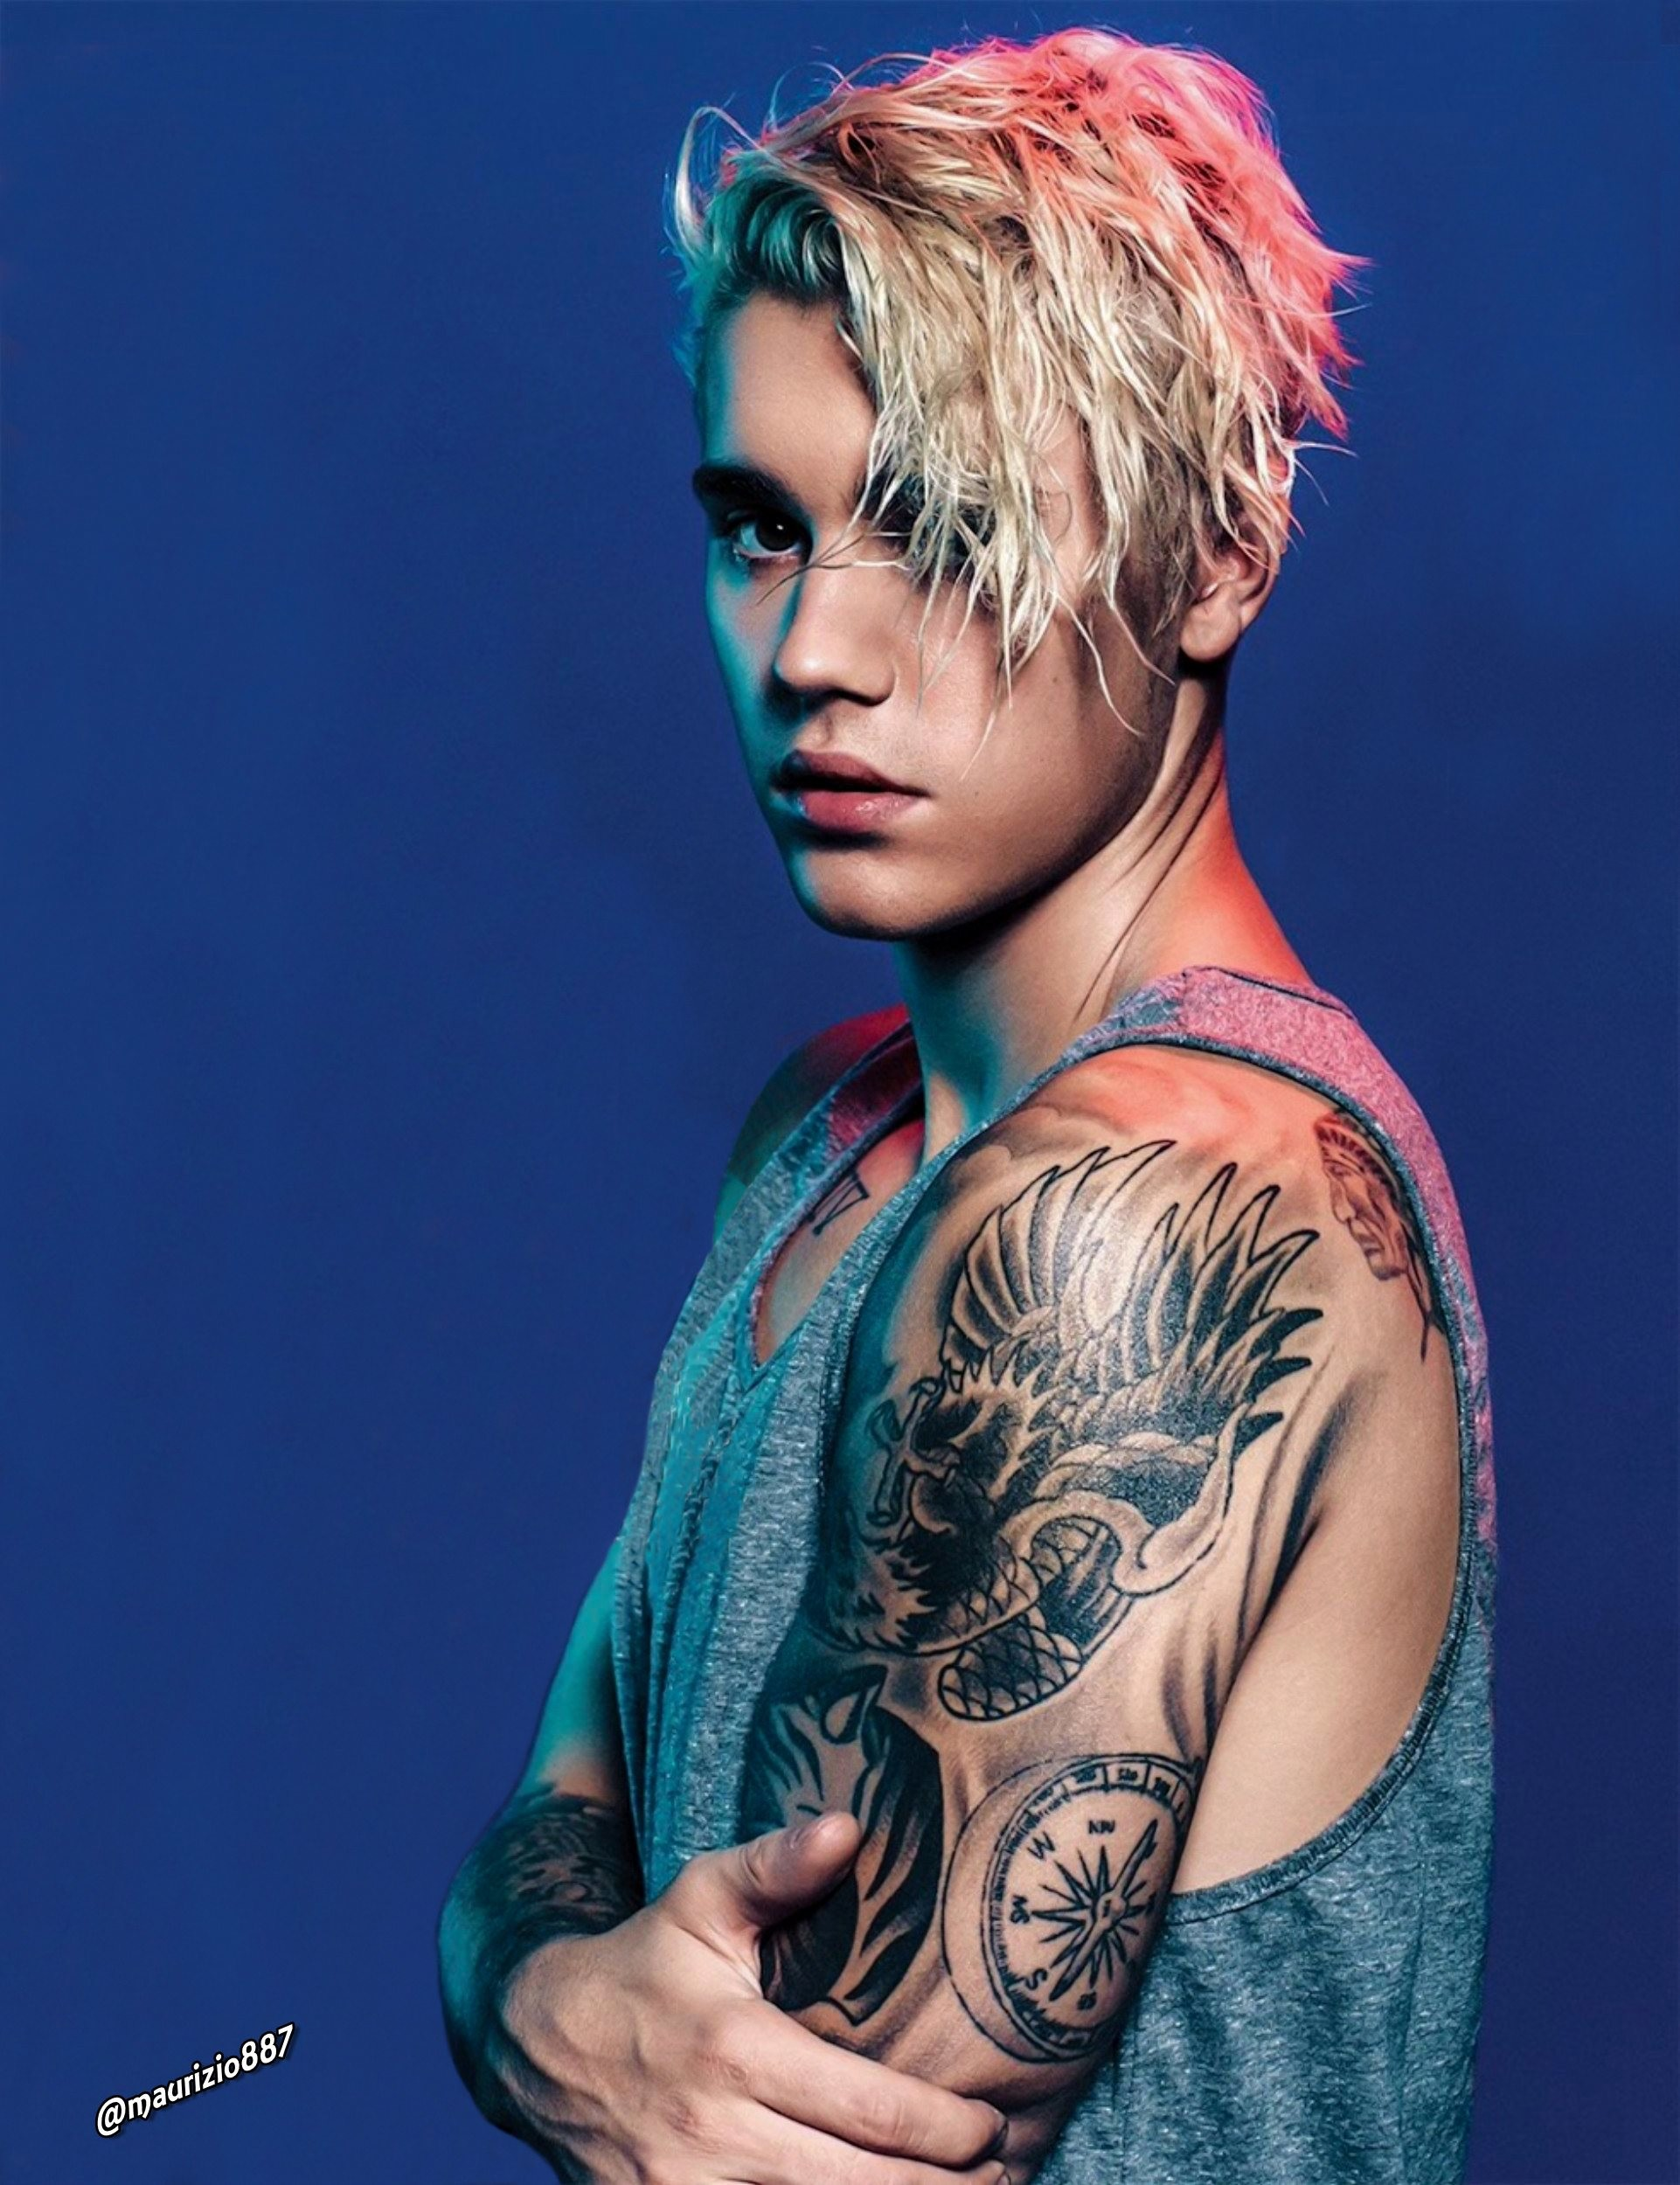 wallpaper of justin bieber 2018 77 images